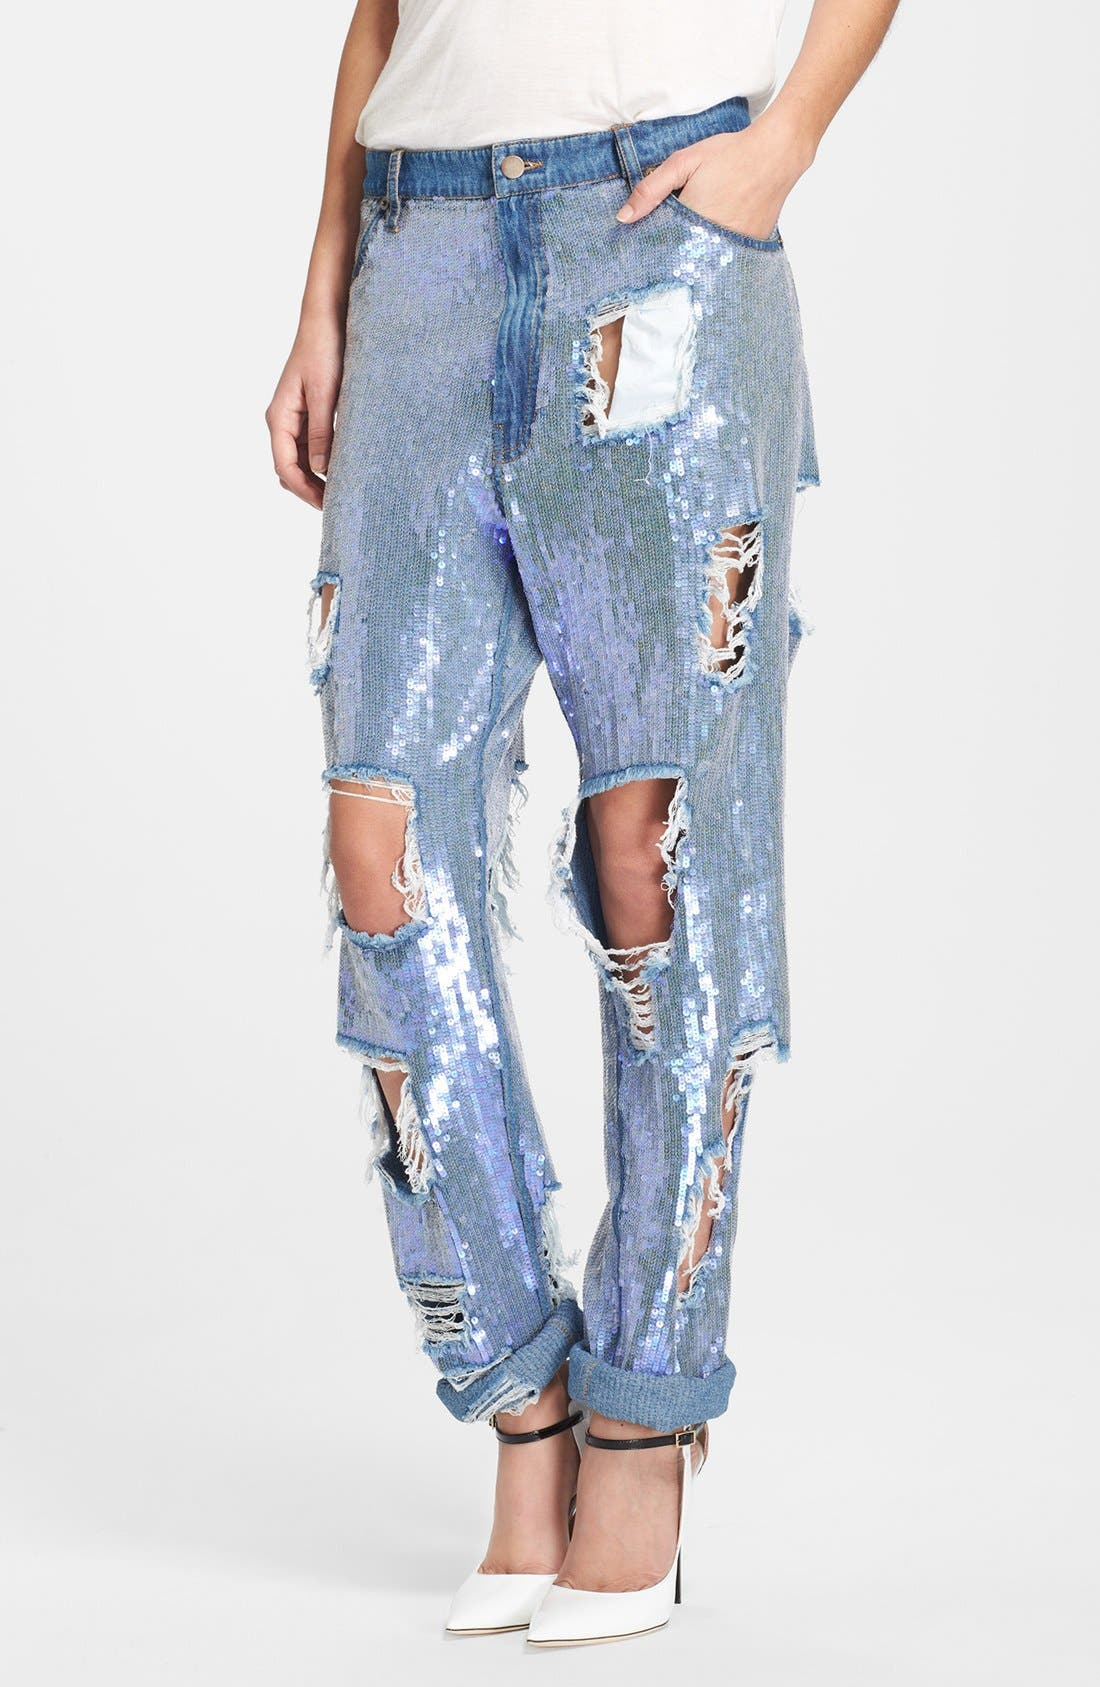 ASHISH Destroyed Sequin Jeans, Main, color, 400